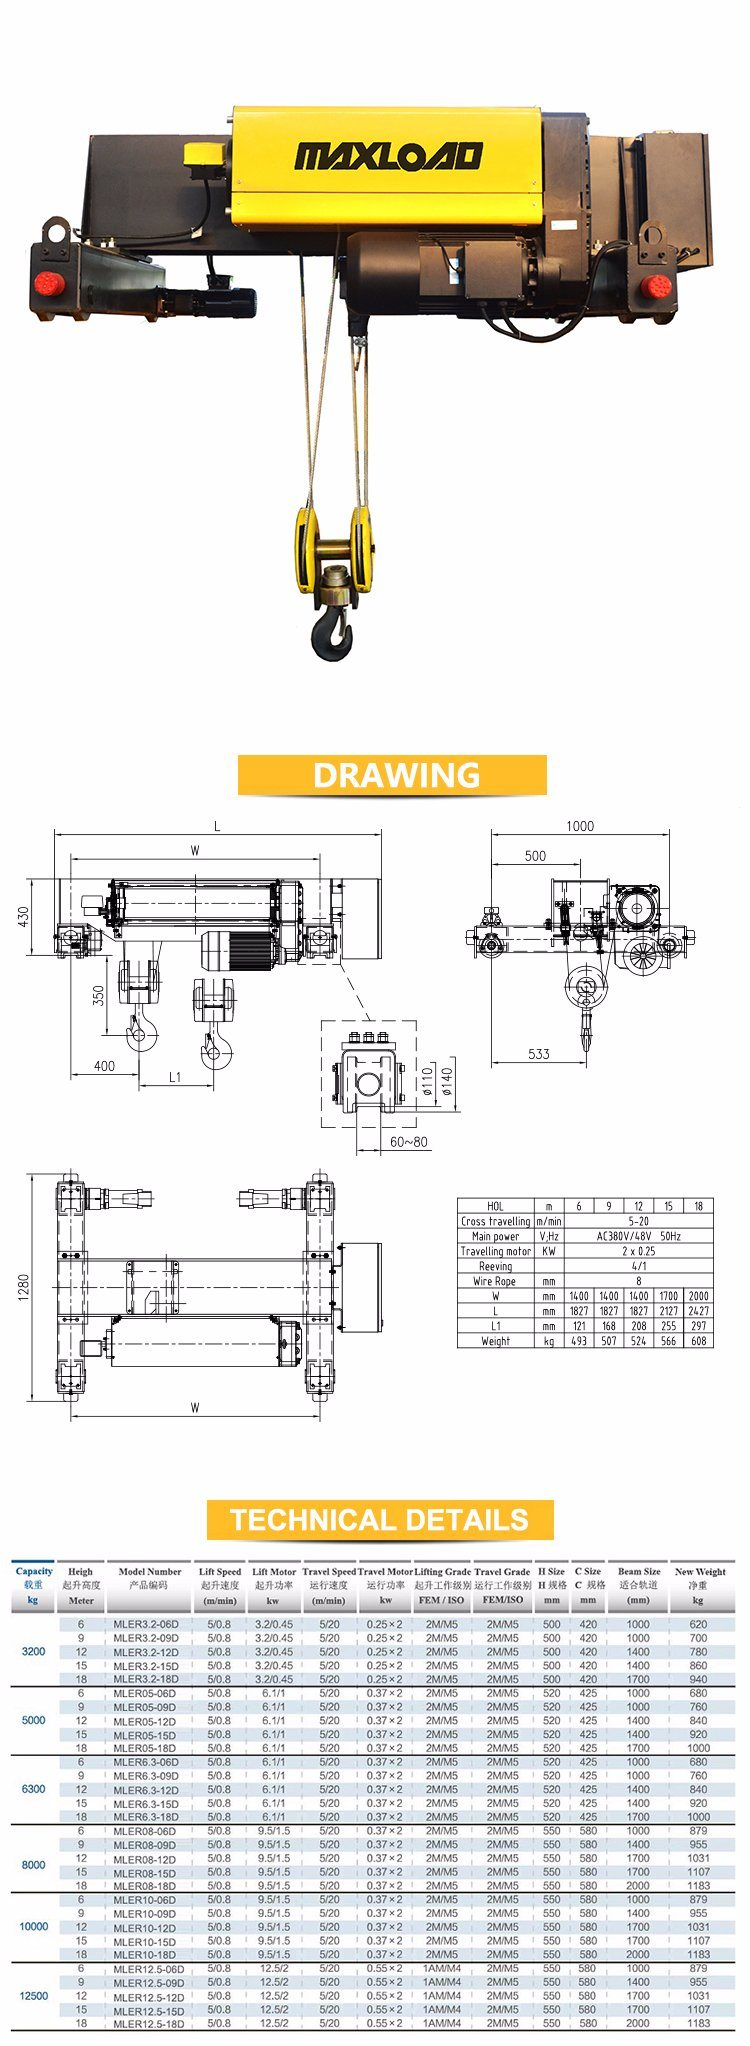 5 Ton Double Girder Wire Rope Electric Hoist Mler05 06d China International 1700 Wiring Diagram Hook With Safety Card As The Standard Configuration By Special Mold And Adopt High Strength Slippery To Reduce Damage